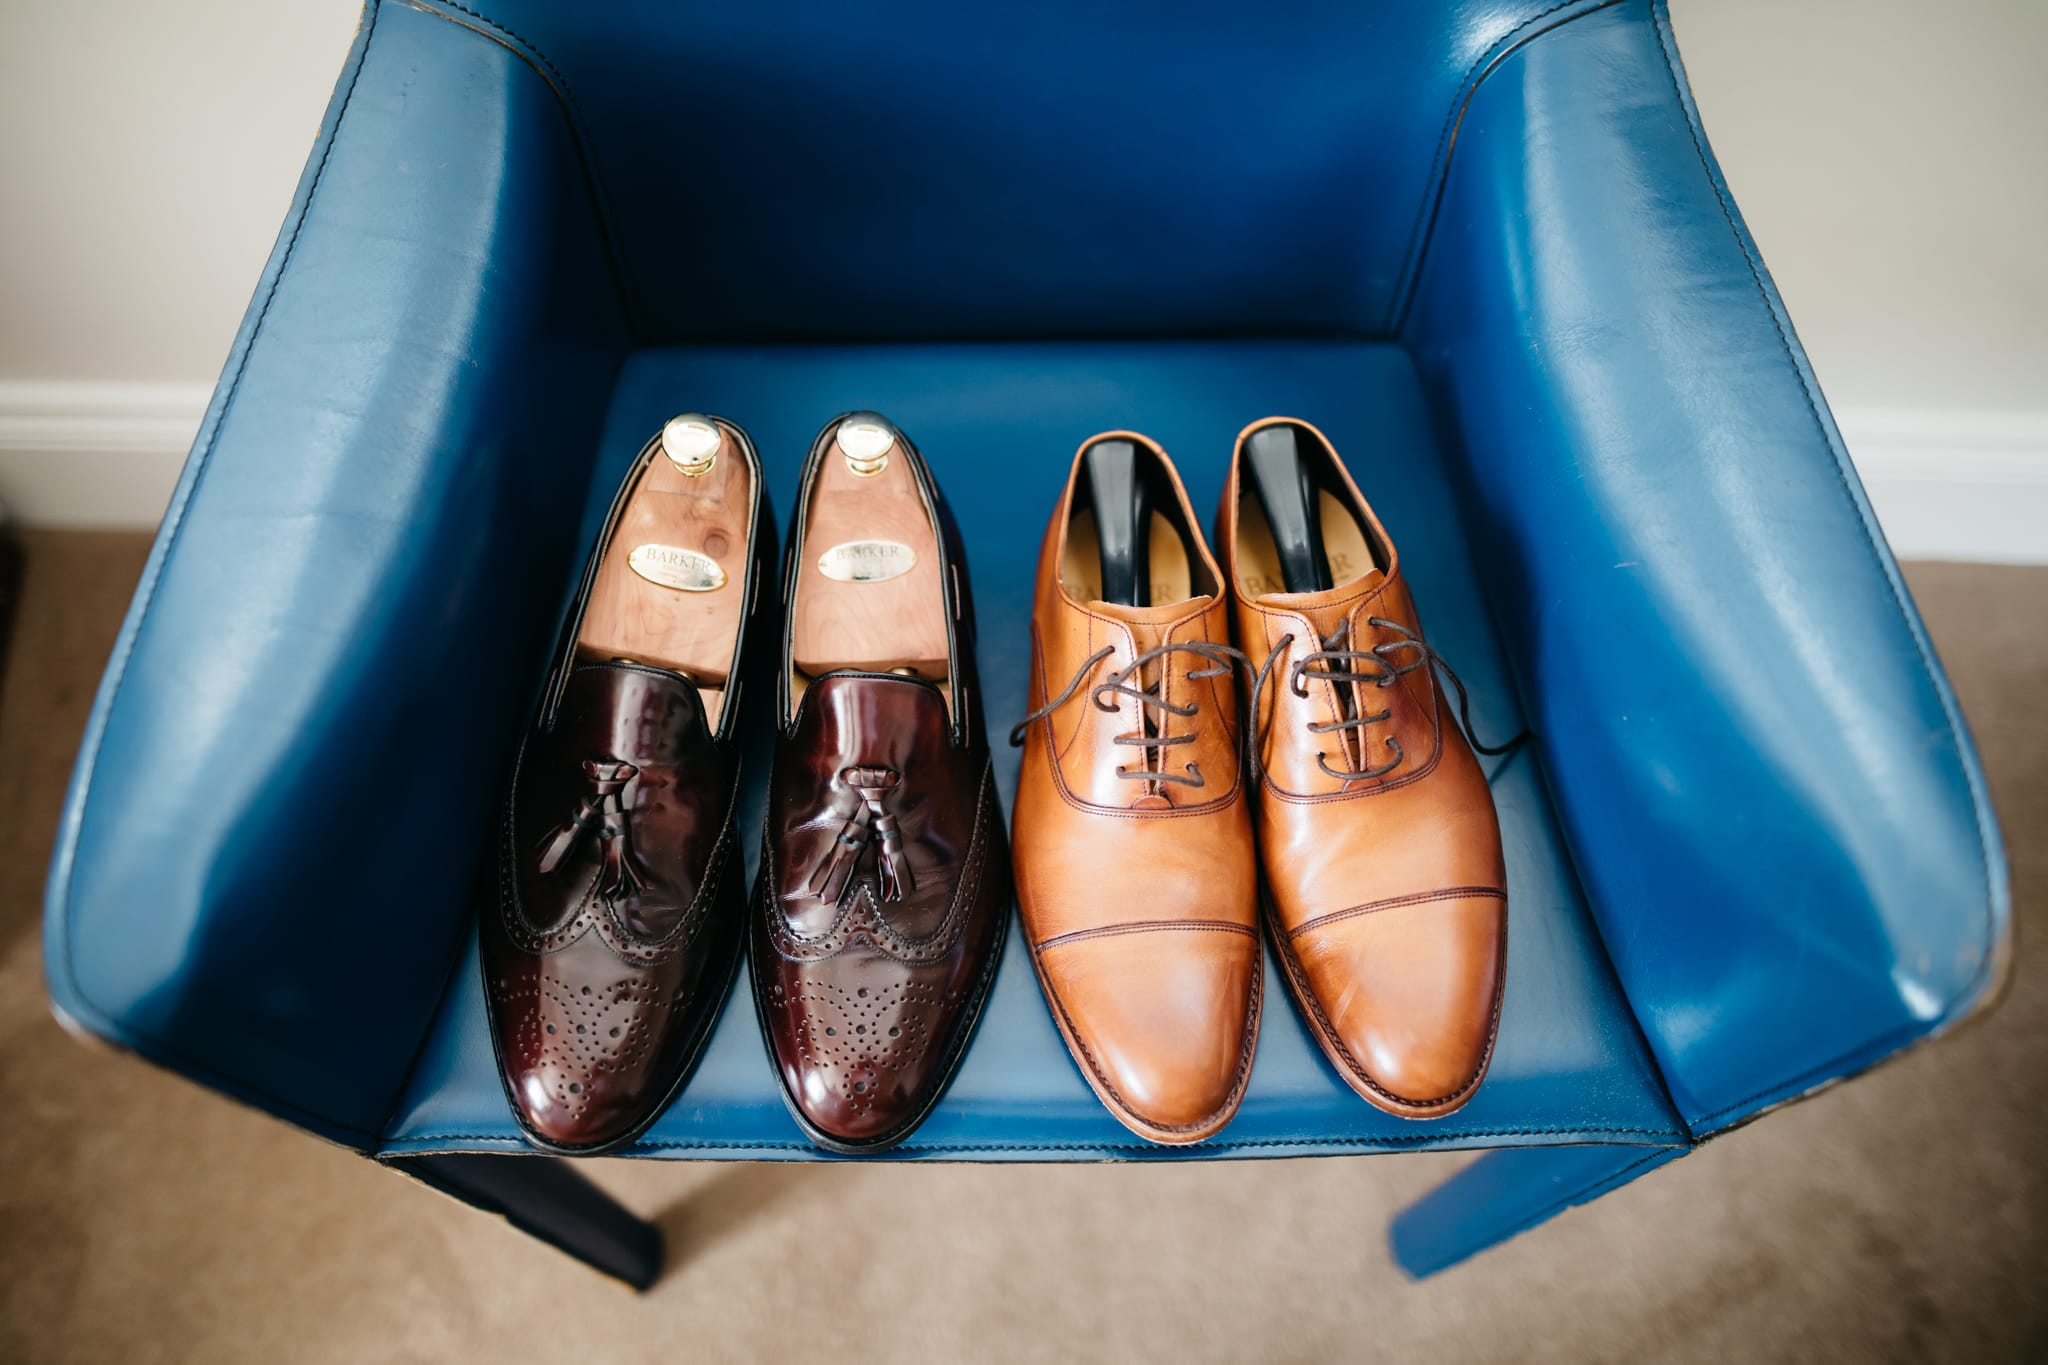 Grooms' shoes